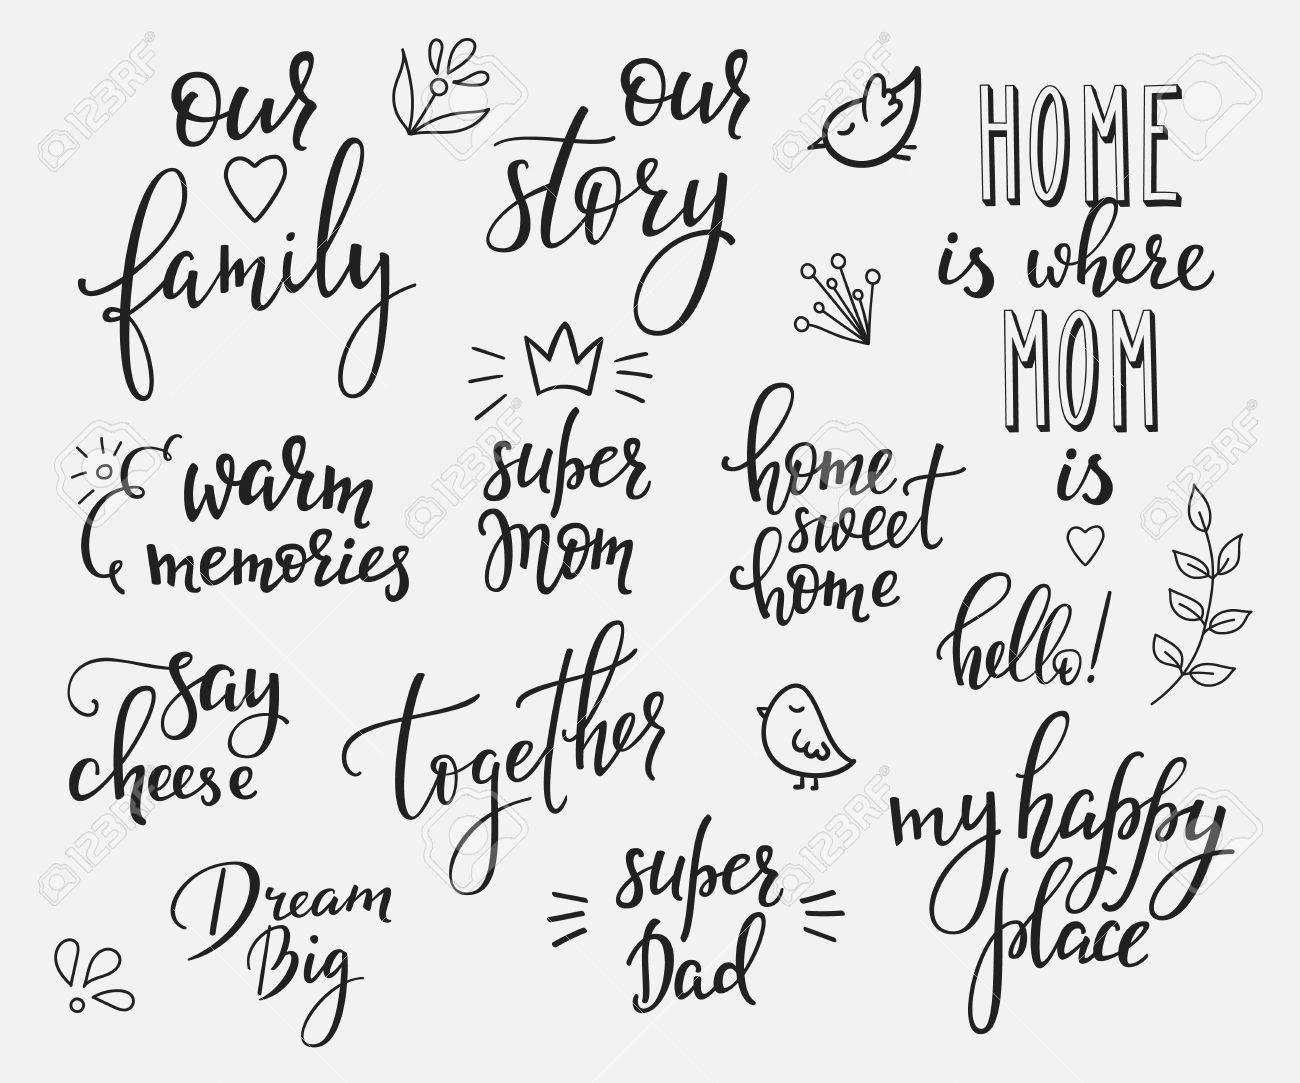 Lettering photography overlay set. Motivational quote. Sweet cute inspiration typography. Calligraphy photo graphic design element. Hand written sign. Love story wedding family album decoration. - 55617343